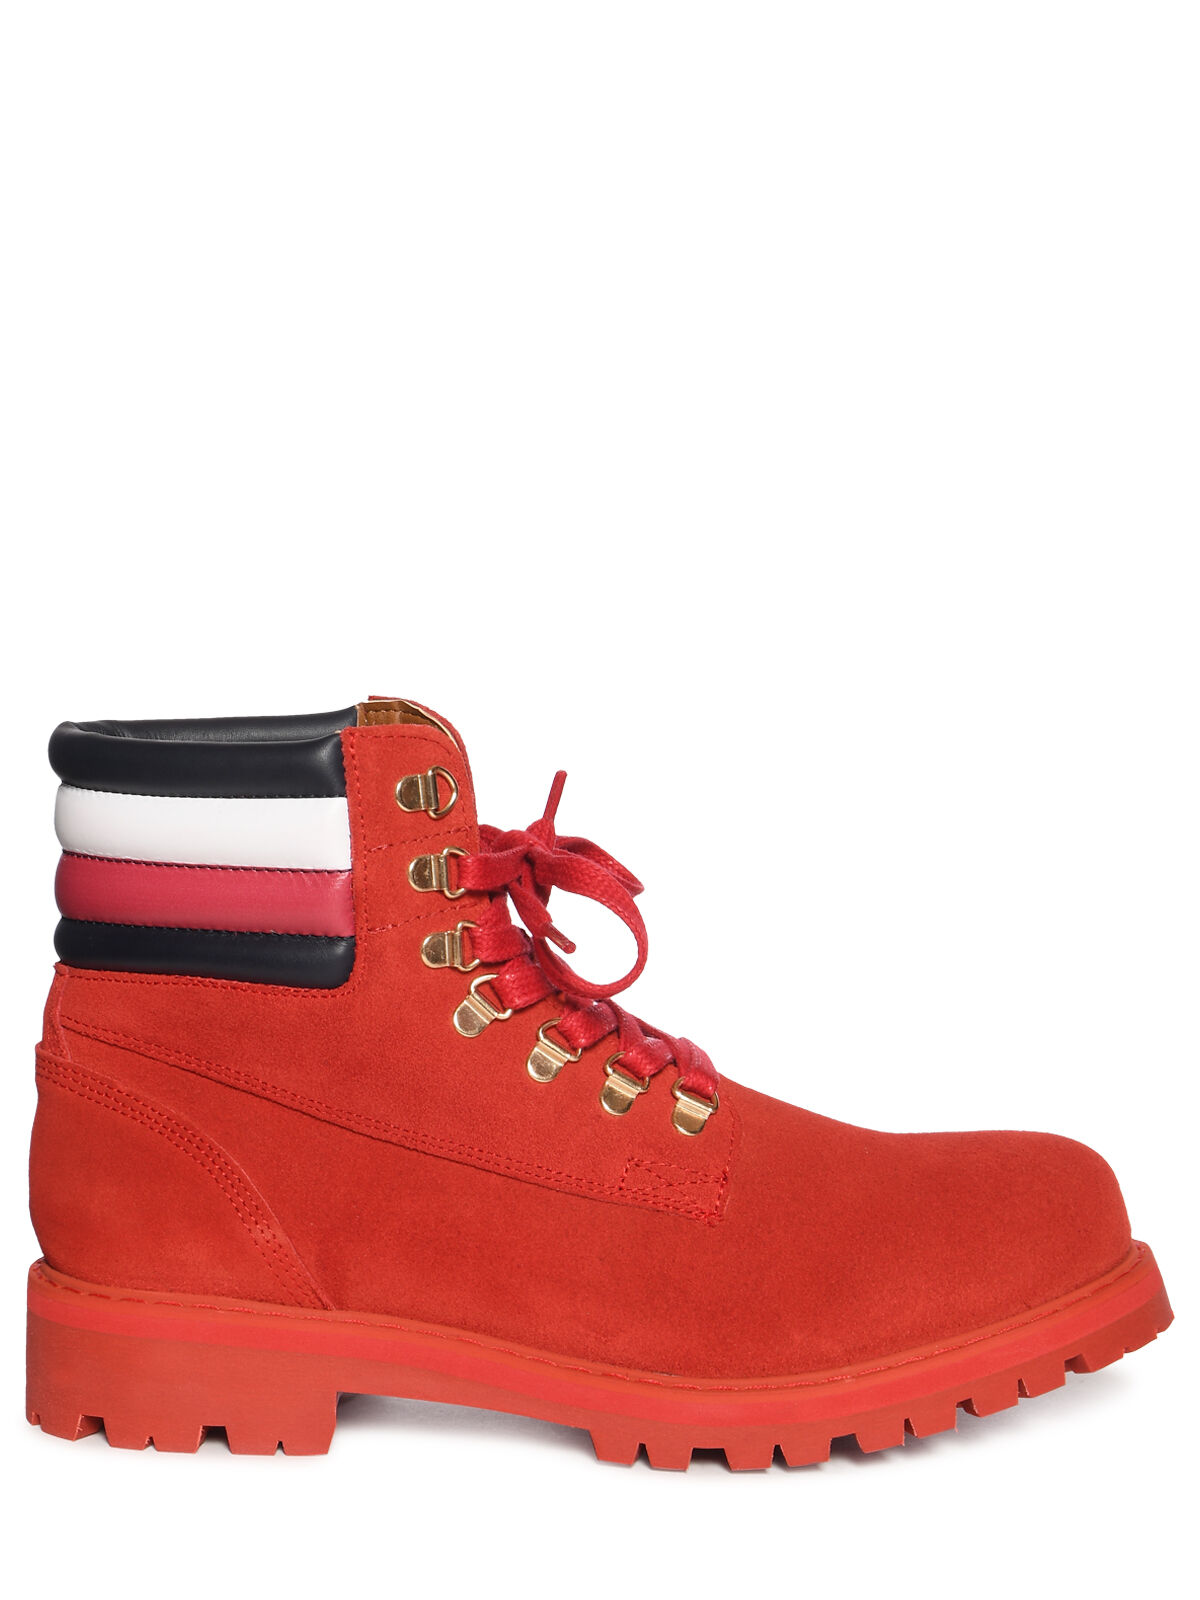 Tommy Hilfiger Boots by Lewis Hamilton